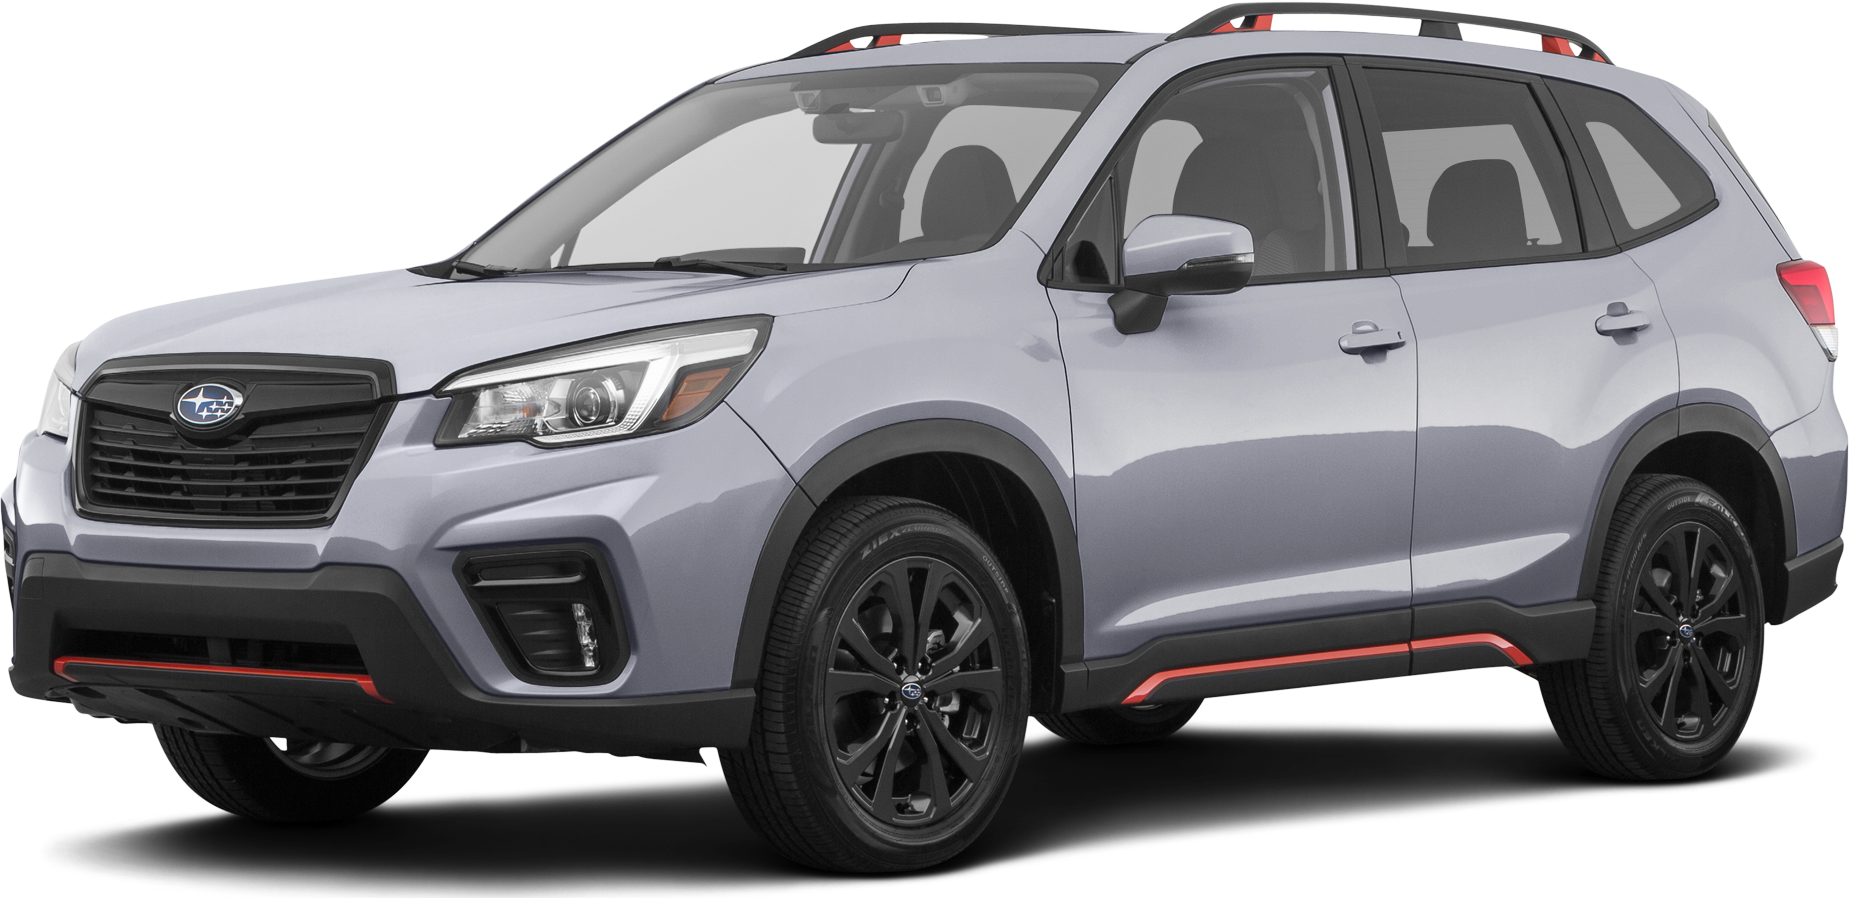 2019 Toyota Rav4 Hybrid Prices Reviews Pictures Kelley Blue Book